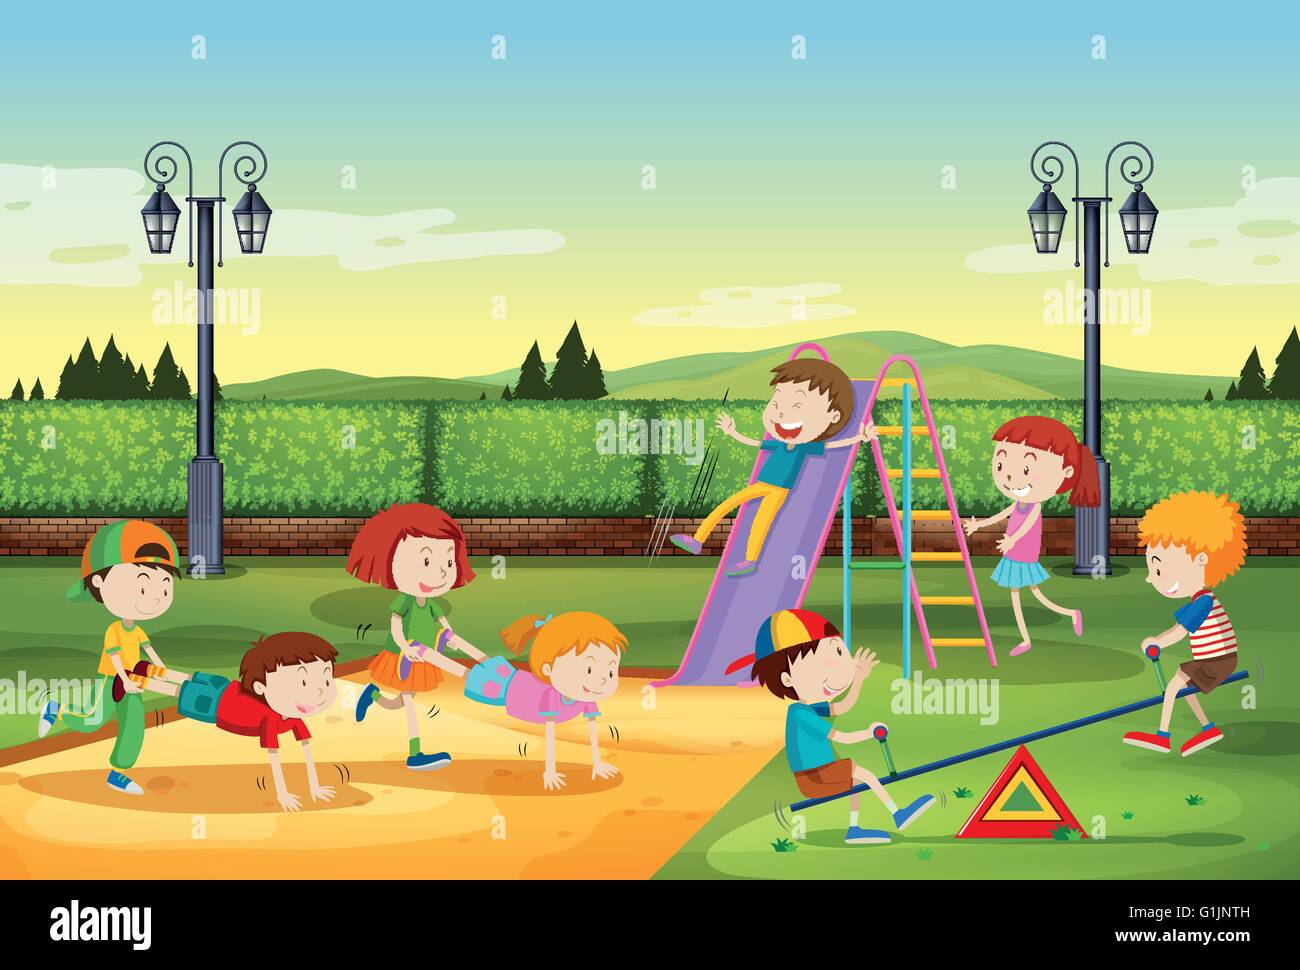 playing in the park essay A park essay is one that focuses on what a park should be it is great place for kids to play and adults to hang out and take some time off to enjoy natural beauty.